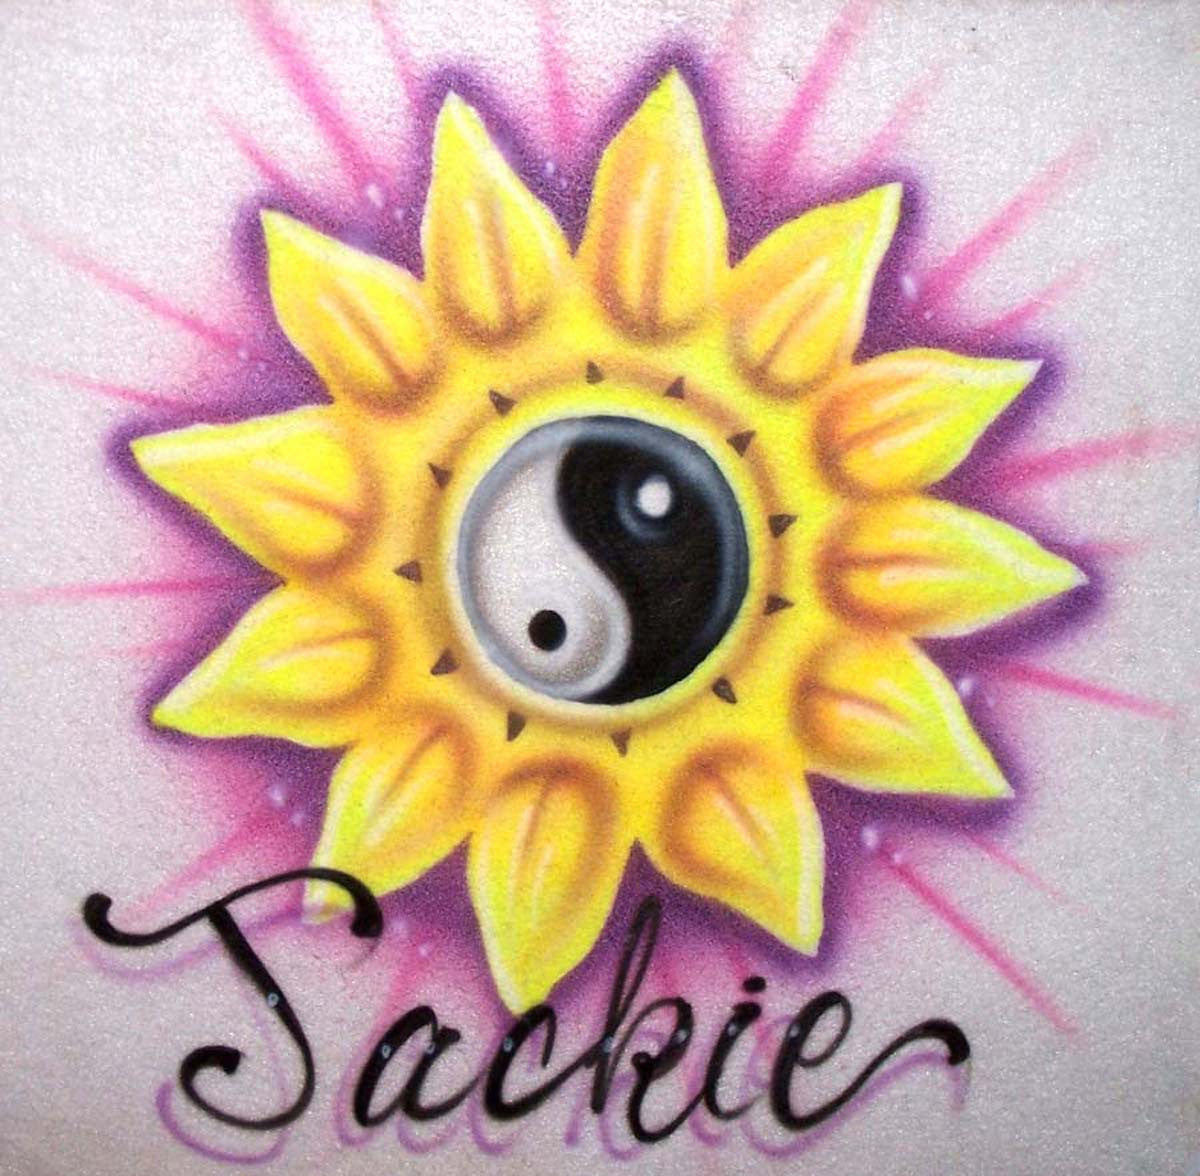 Sunflower and Yin Yang Symbol Personalized with Any Name on T's, Sweatshirts, and More